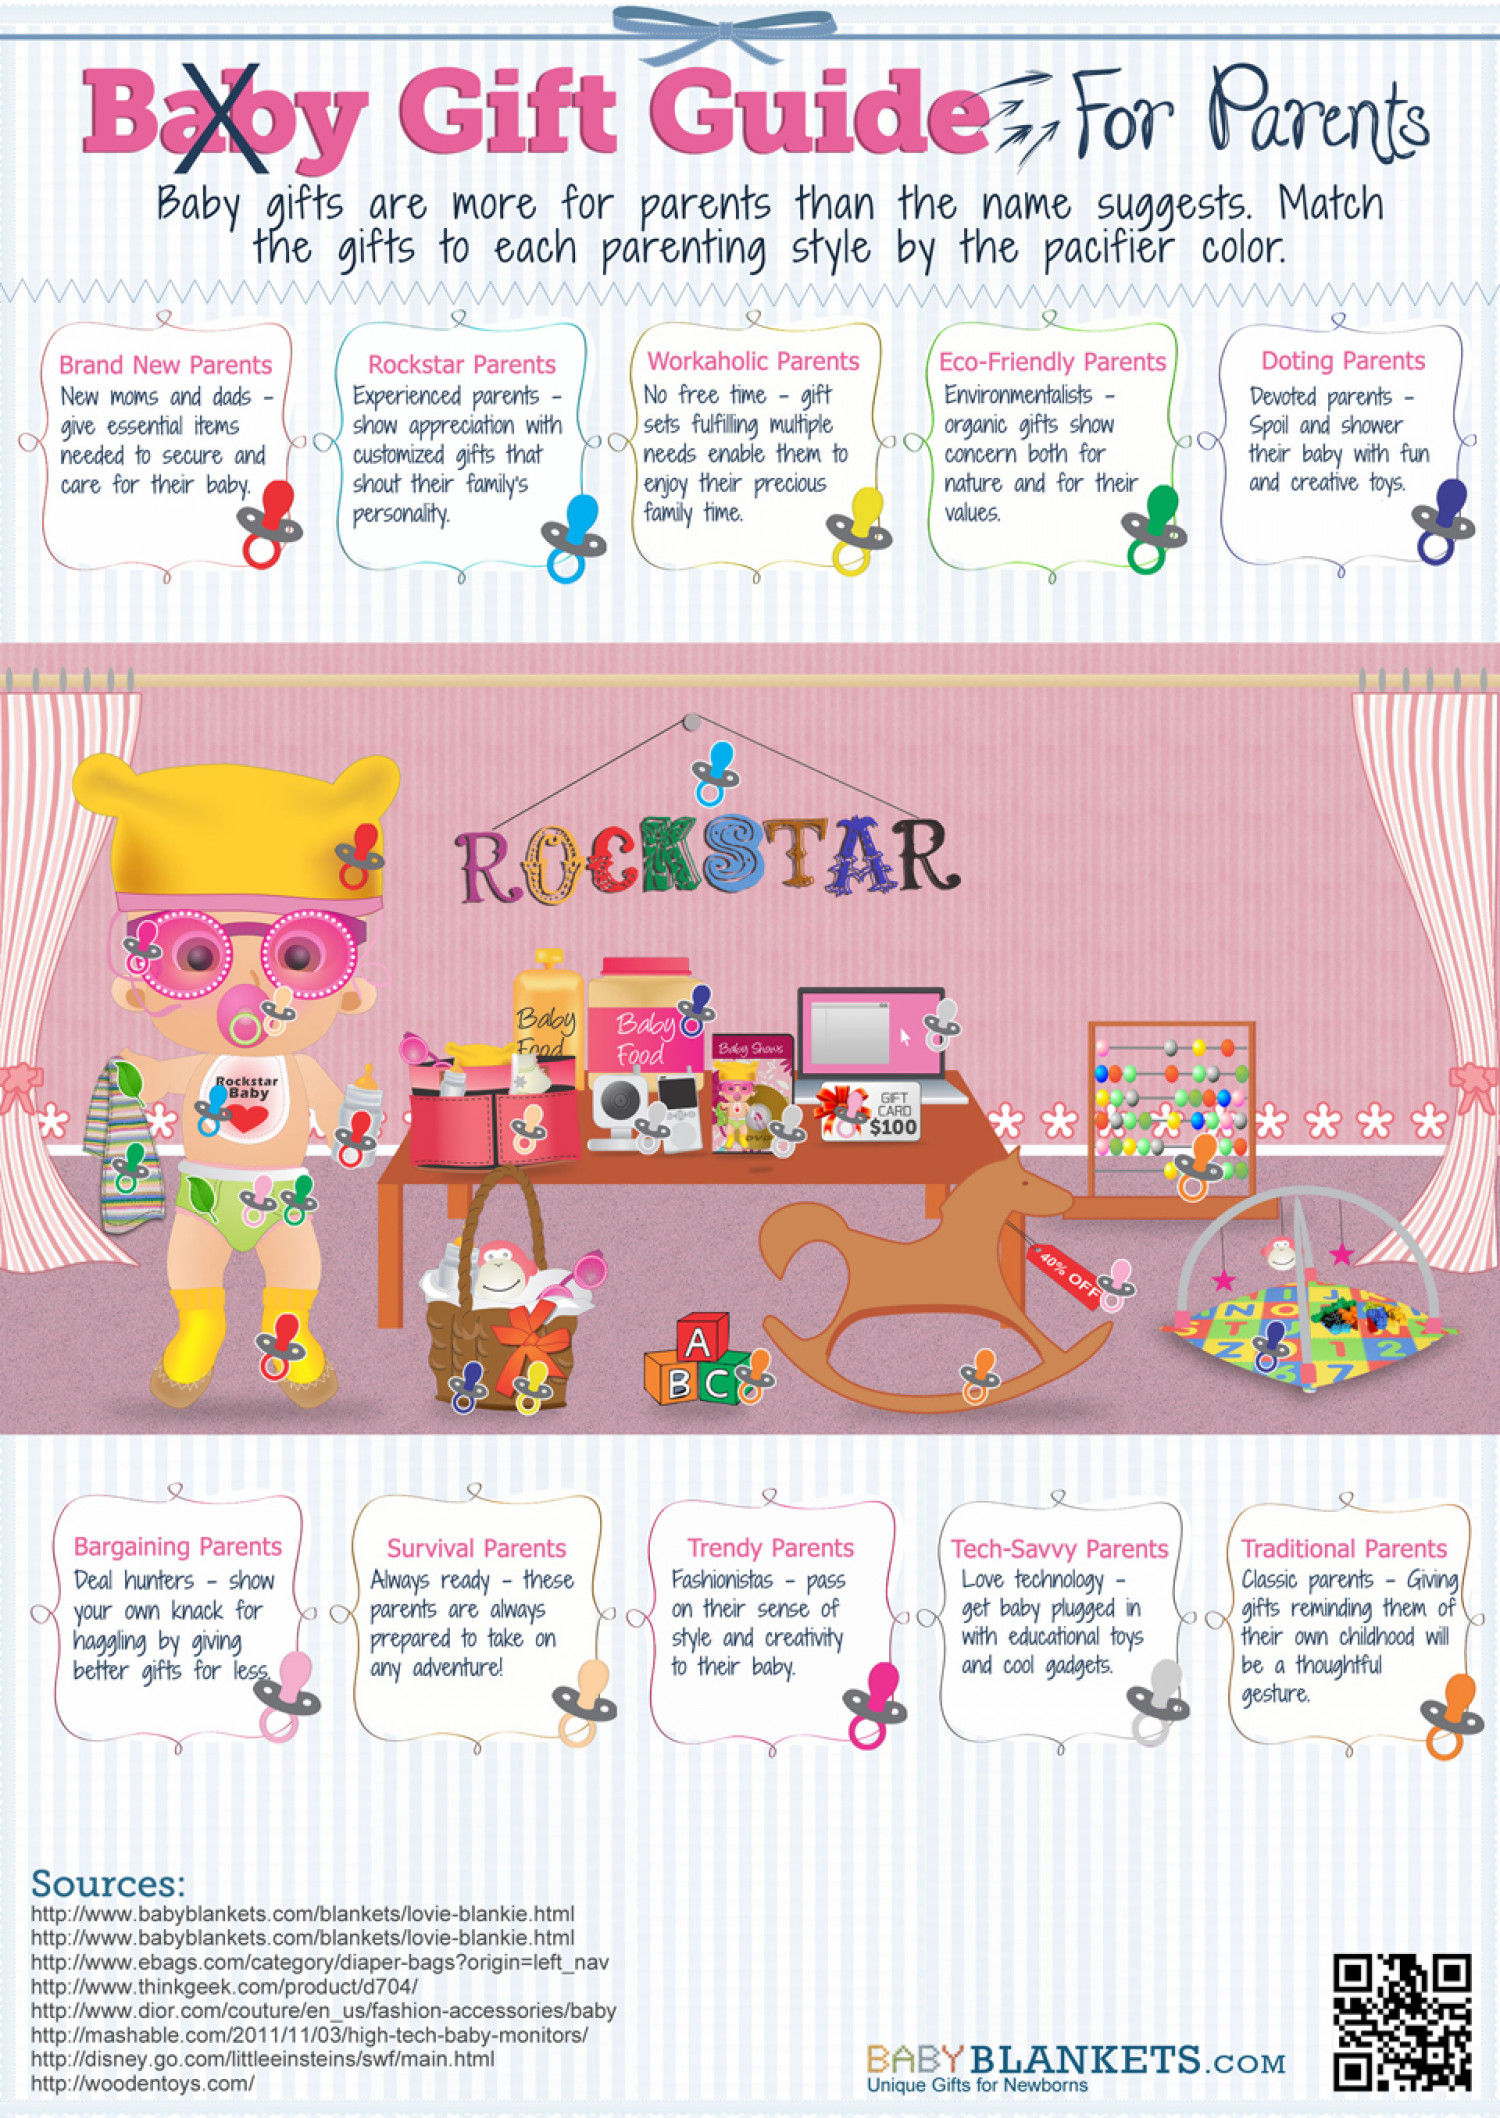 Baby gift ideas according to parenting styles visual baby gift ideas according to parenting styles infographic negle Image collections